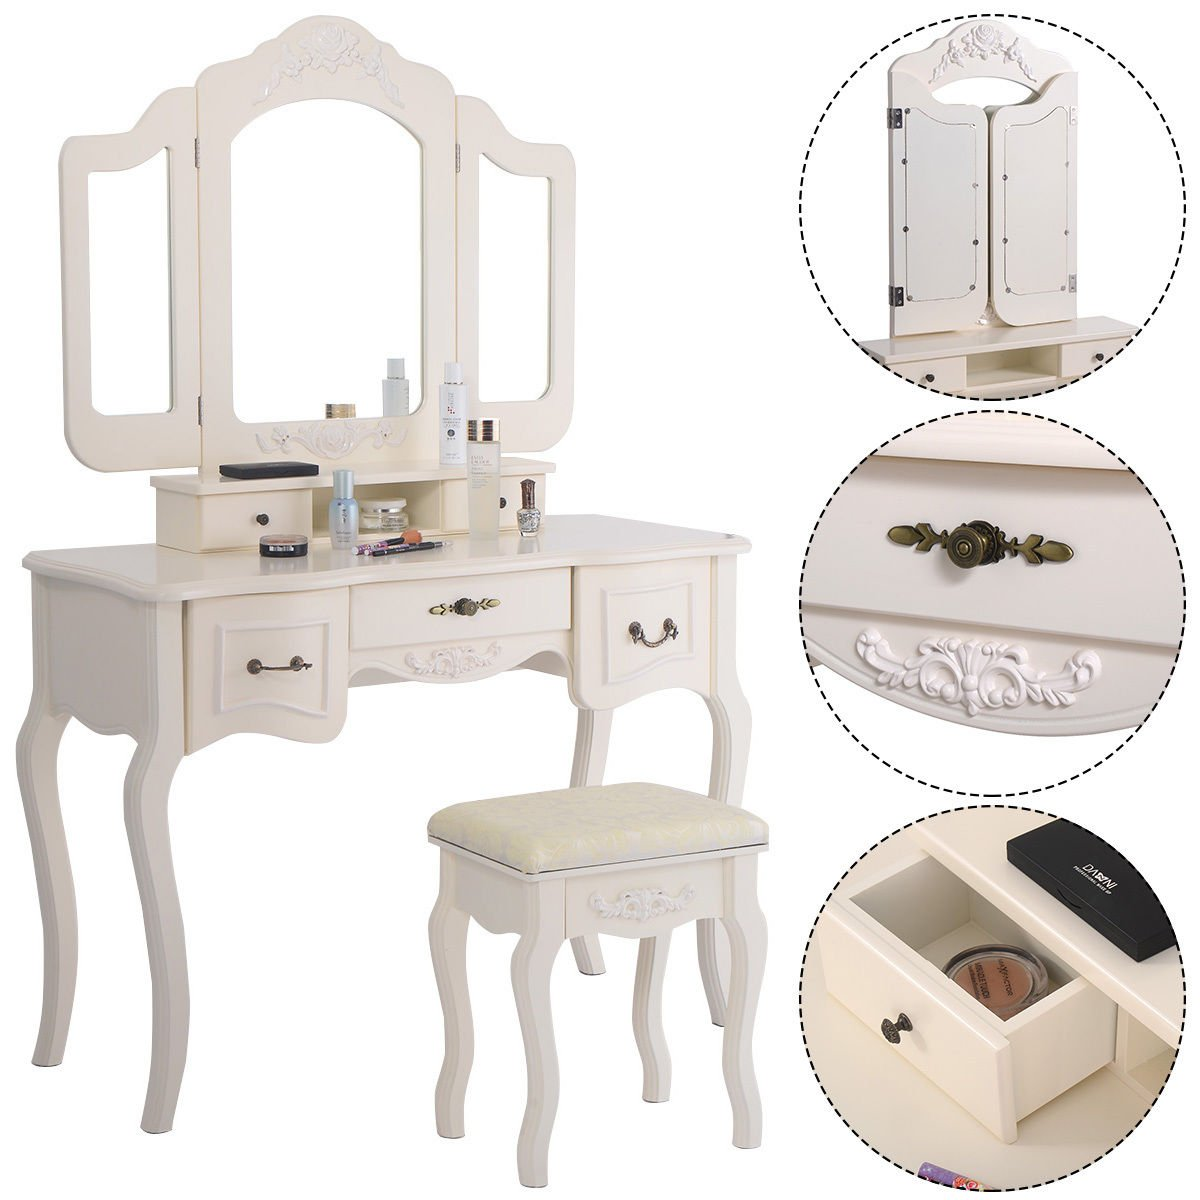 Giantex Tri Folding Vintage White Vanity Makeup Dressing Table Set 5 Drawers &stool 1